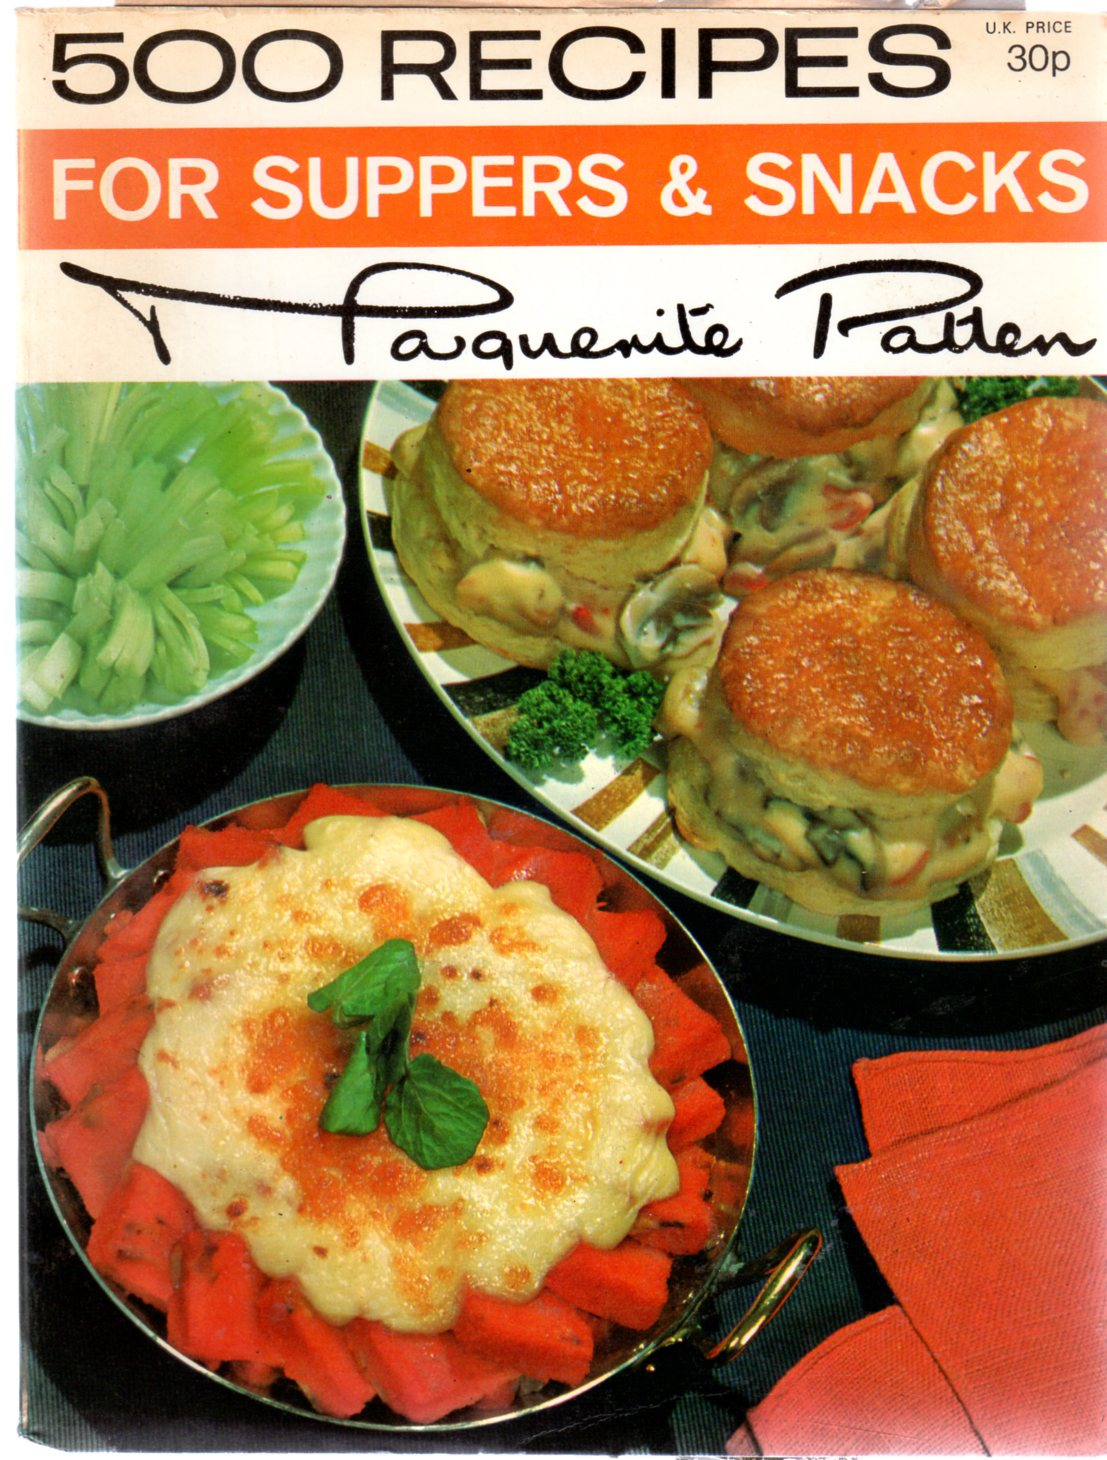 Image for 500 Recipes for Suppers & Snacks